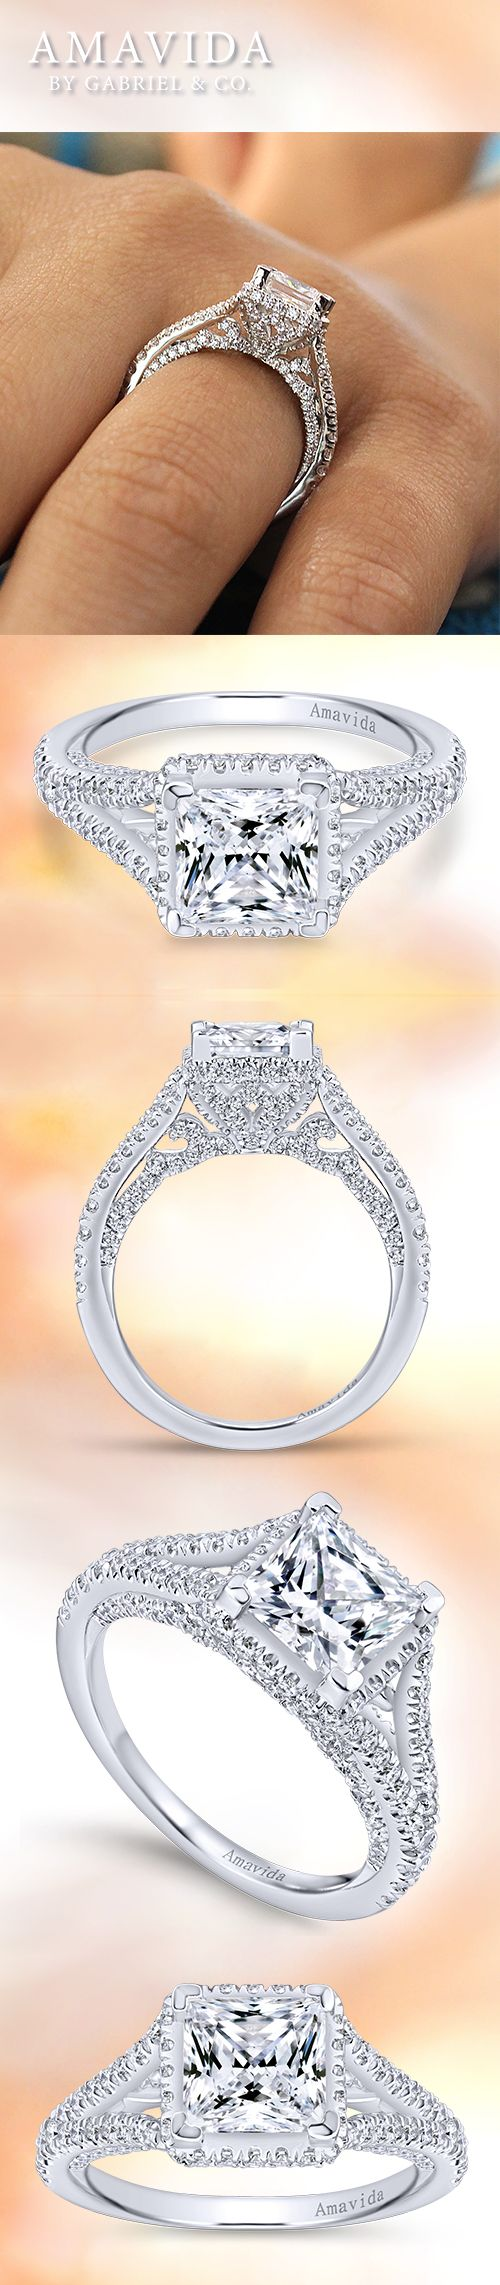 Gabriel & Co - Voted #1 Most Preferred Jewelry Designer. Let the beauty of your heart speak with this stunning 18k white gold, princess-cut diamond engagement ring. Style: ER12903S6W83JJ